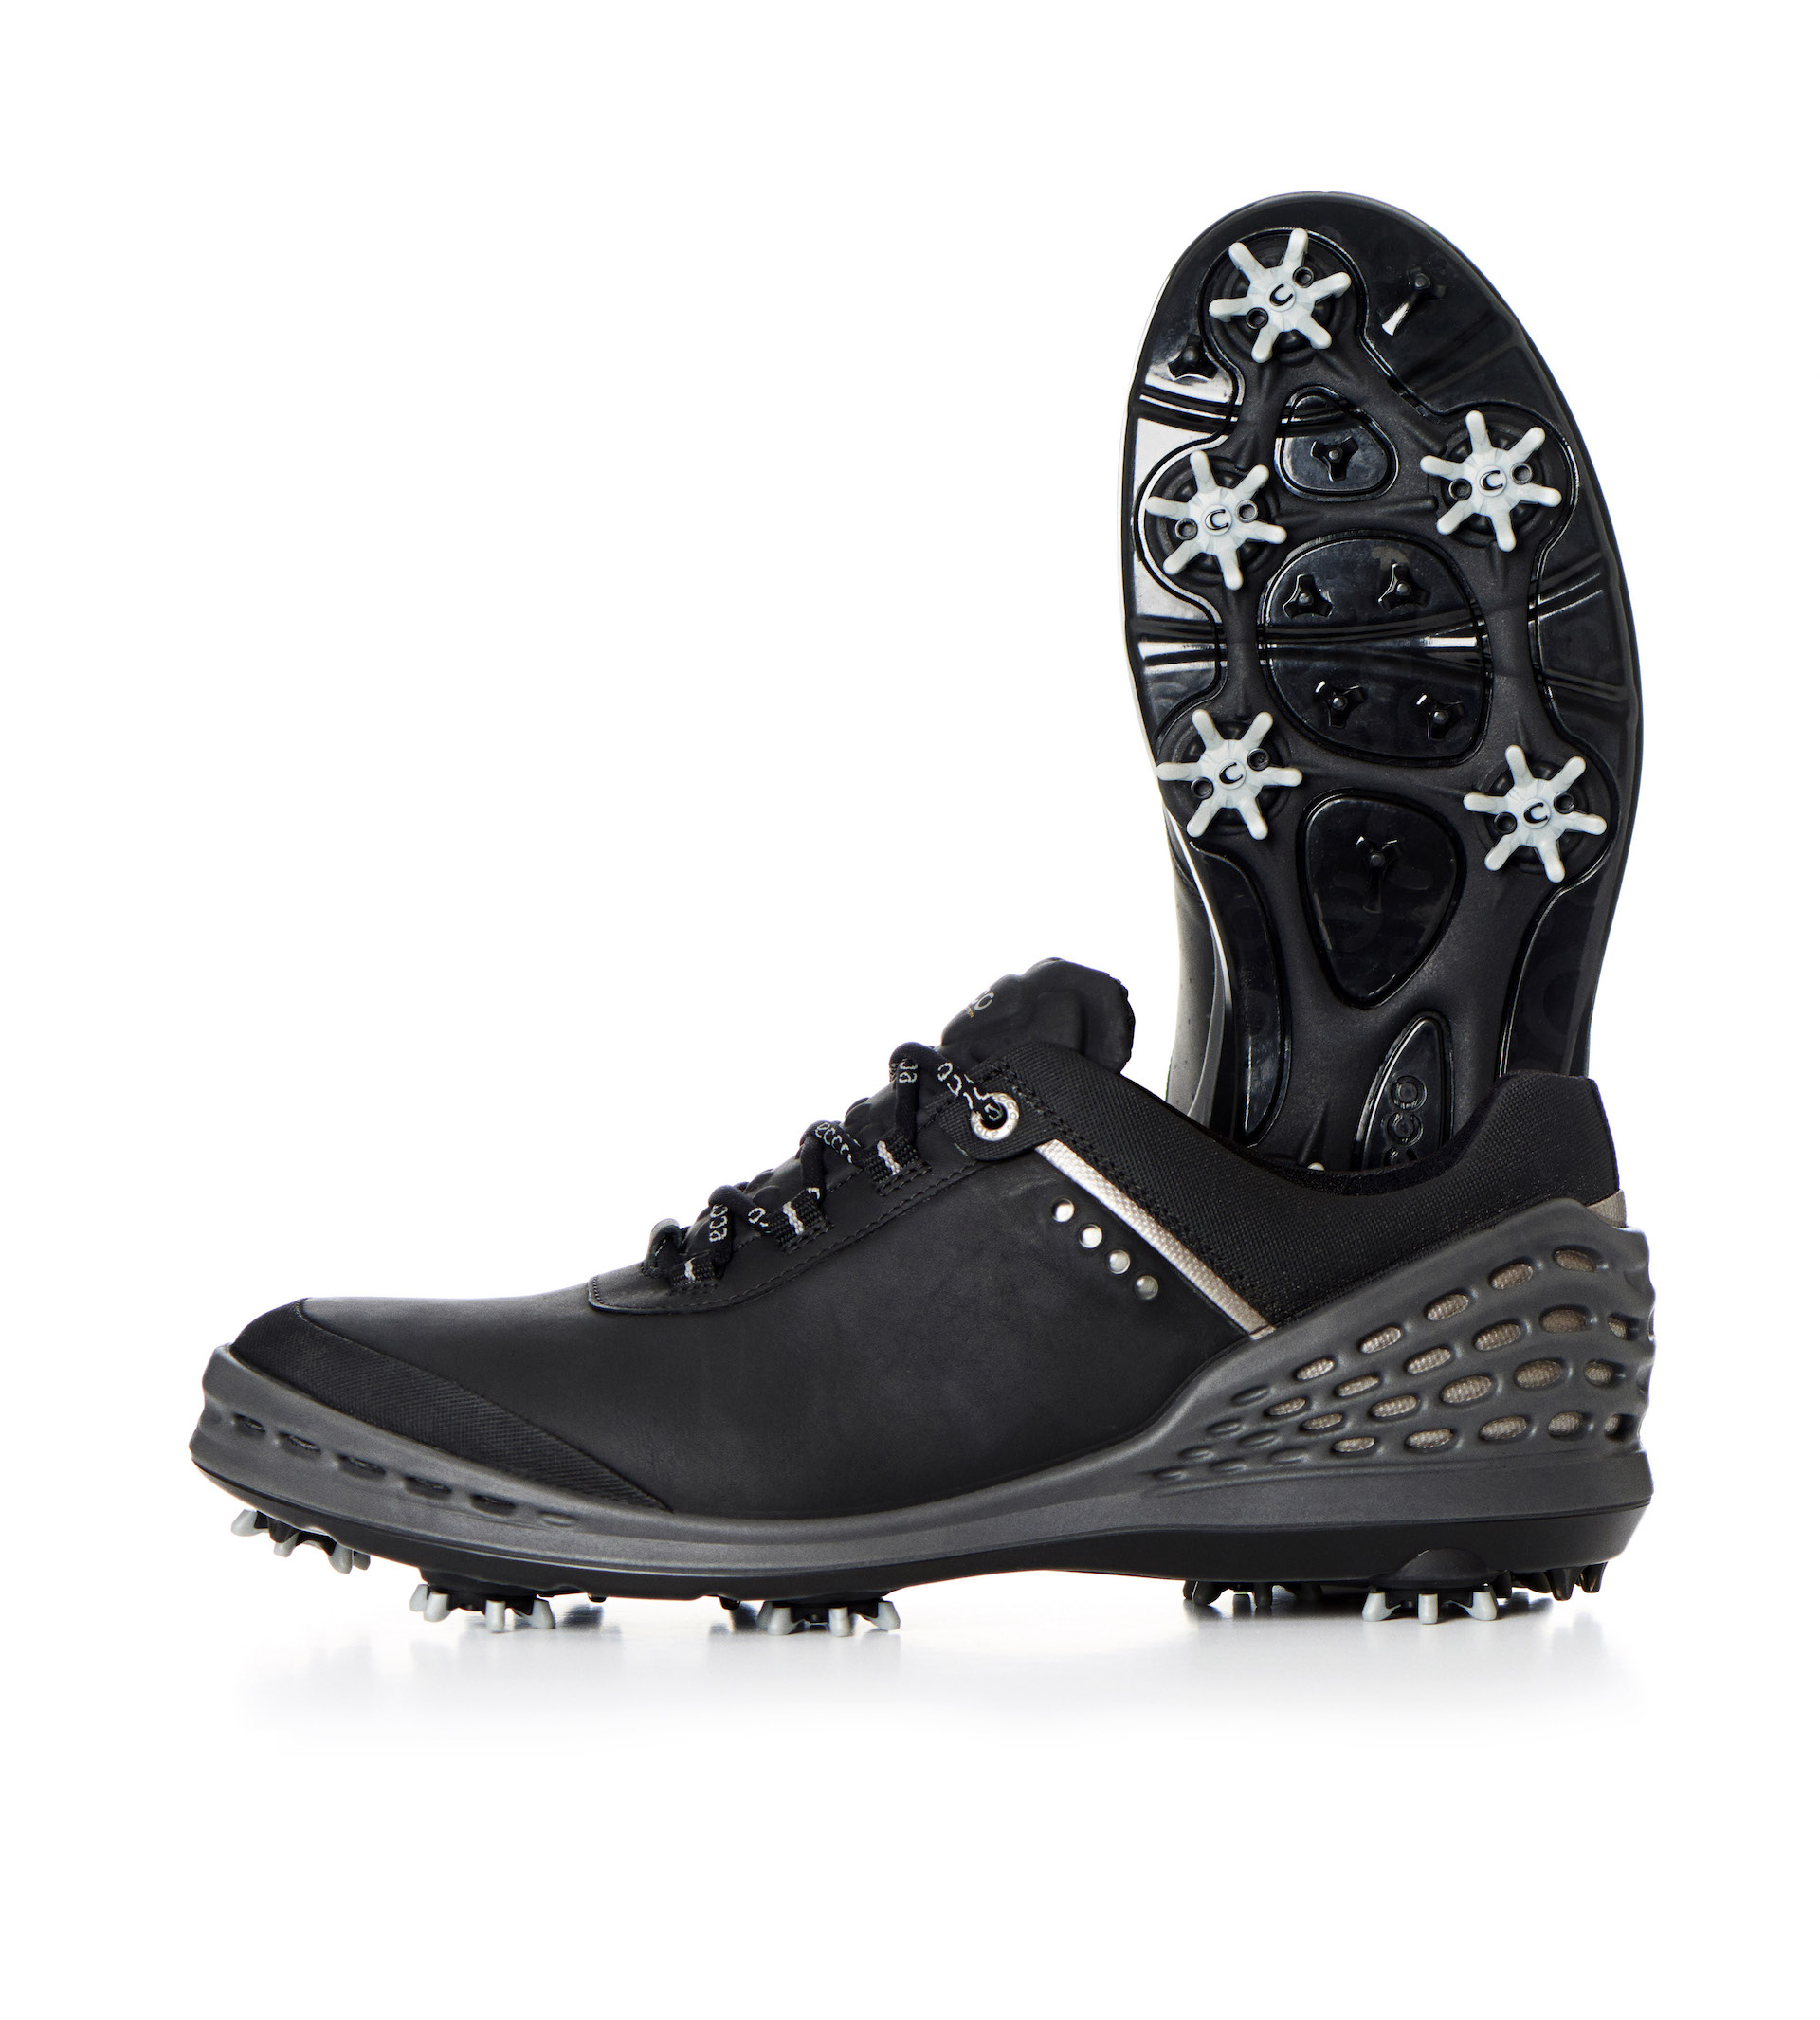 6 Of The Best Winter Golf Shoes